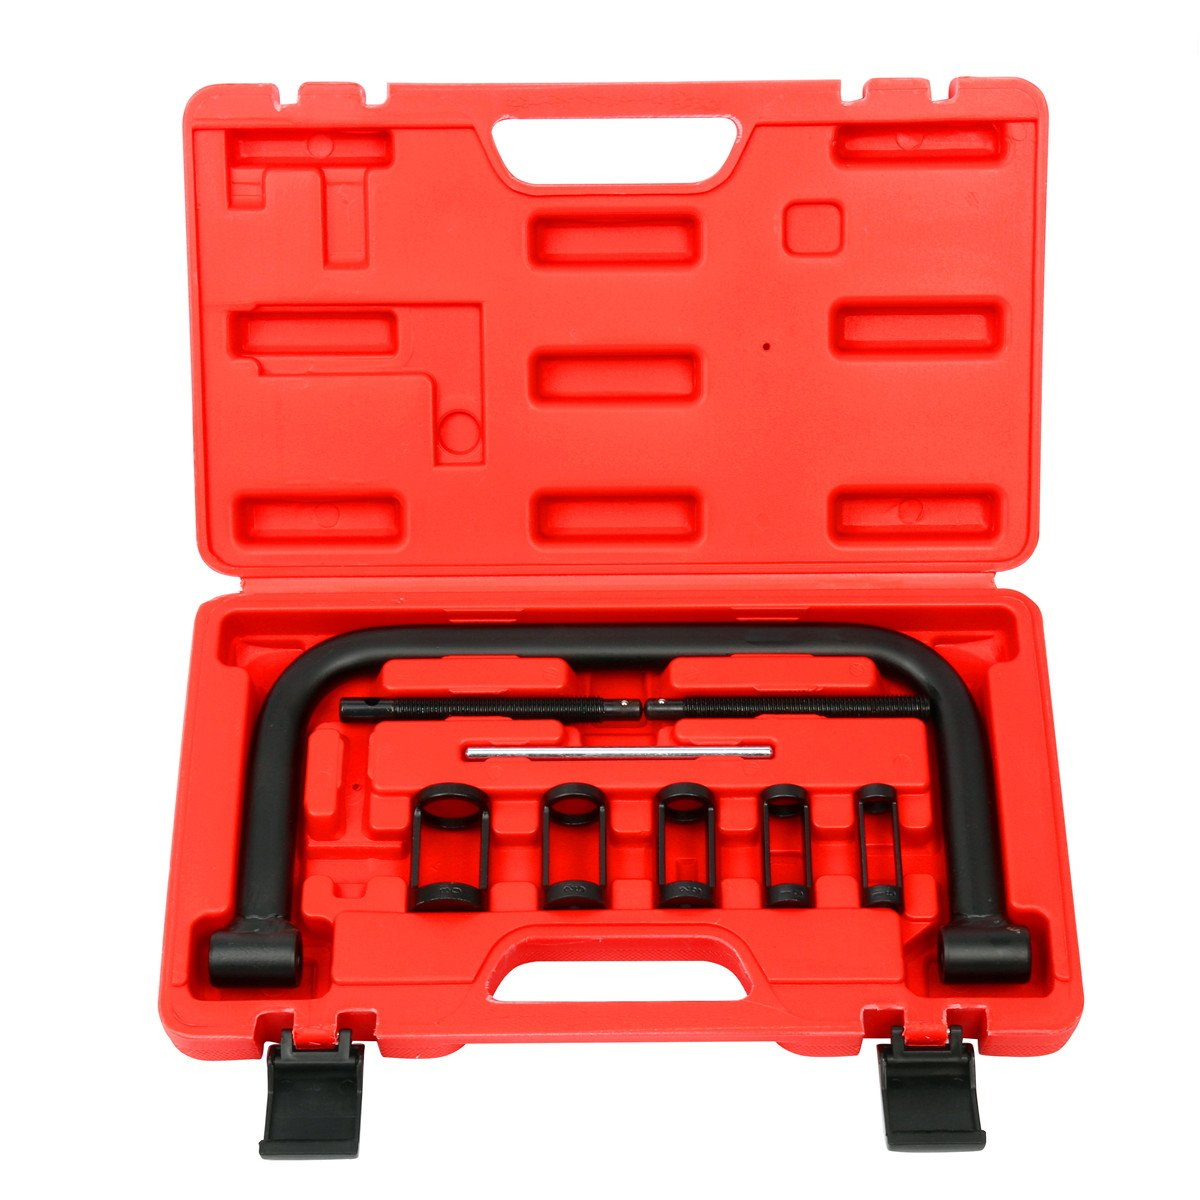 FreeTec 5 in 1 10PCS Auto Valve Spring Compressor Tool Kit Set For Cars Motorbikes freebirdtrading FT0017